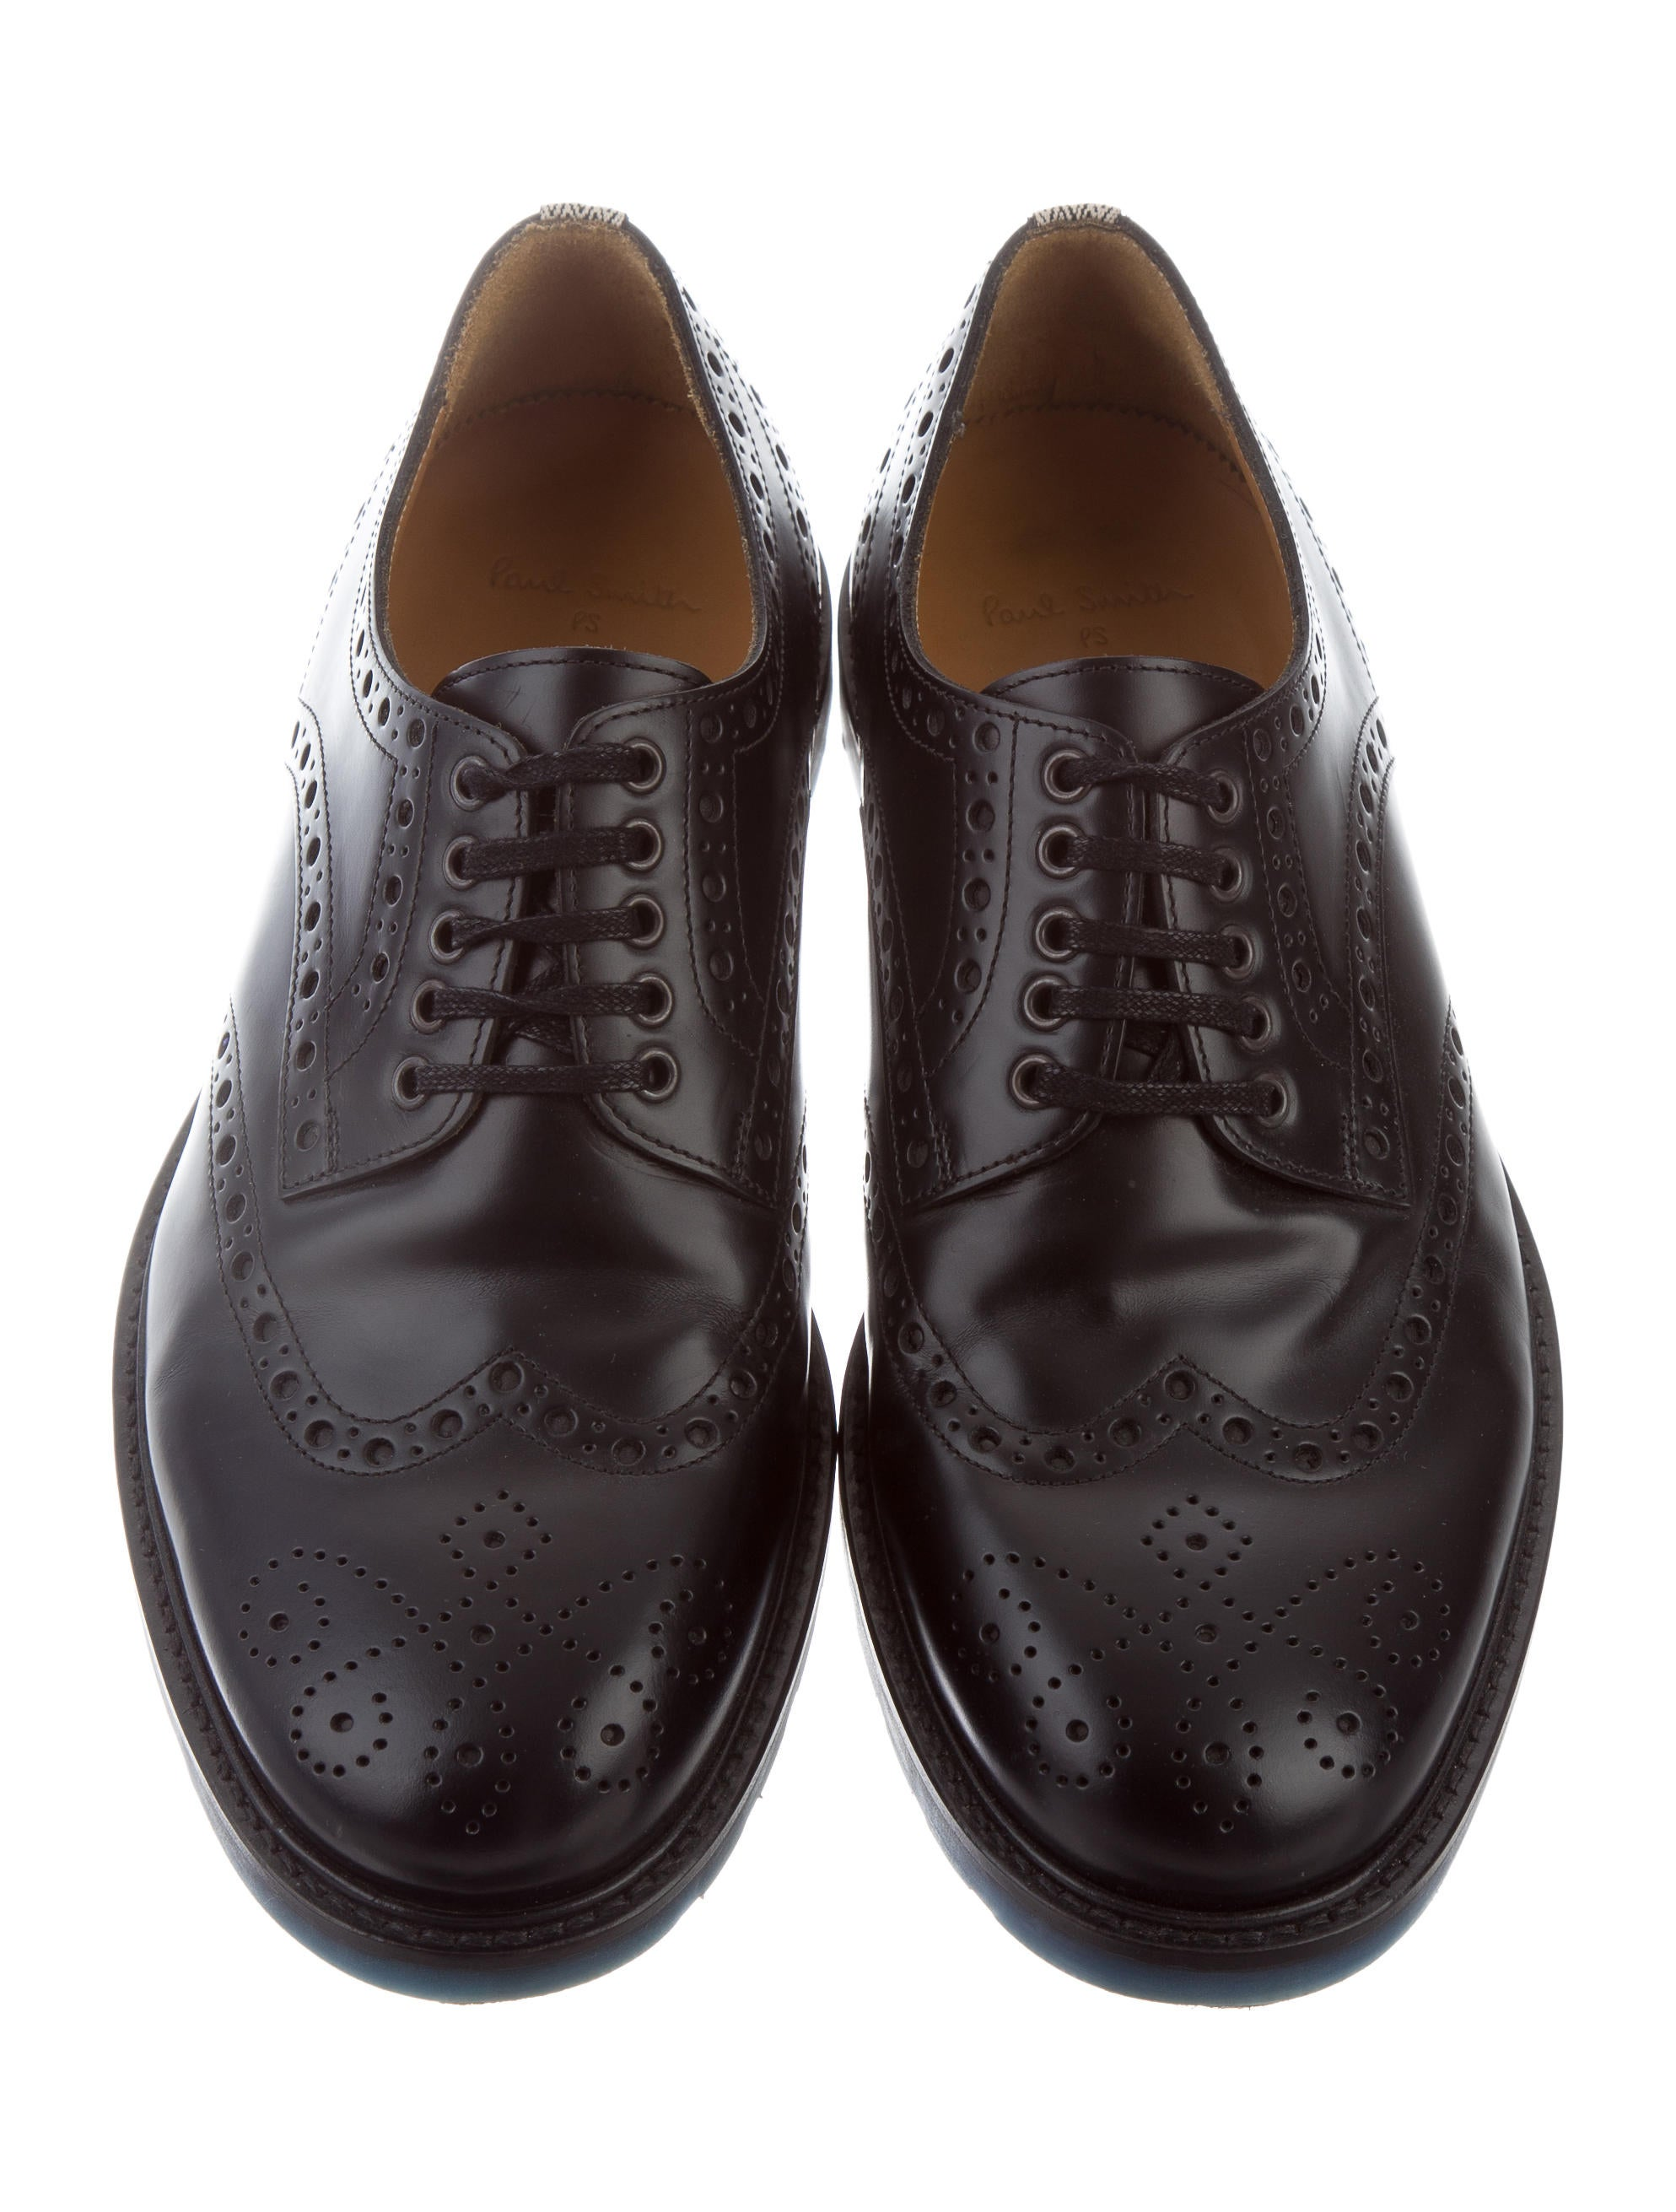 PS by Paul Smith Leather Brogue Derby Shoes Shoes  : WPSPS207673enlarged from www.therealreal.com size 1987 x 2622 jpeg 339kB